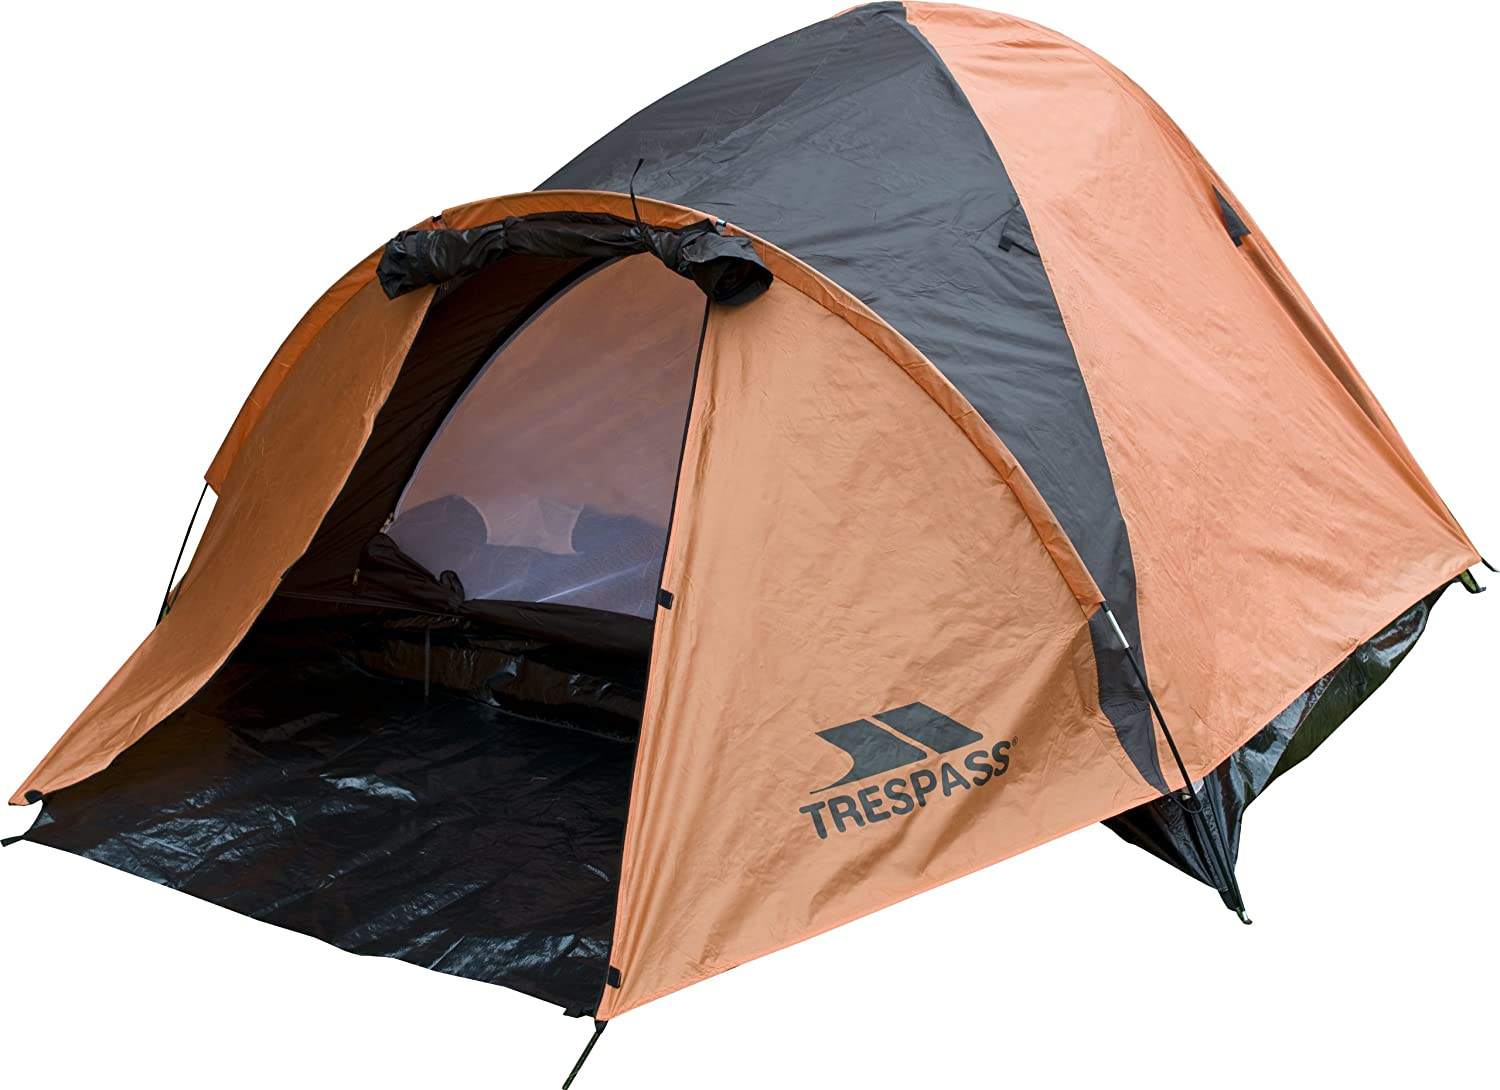 Trespass Ghabhar 4 Person Tent Review